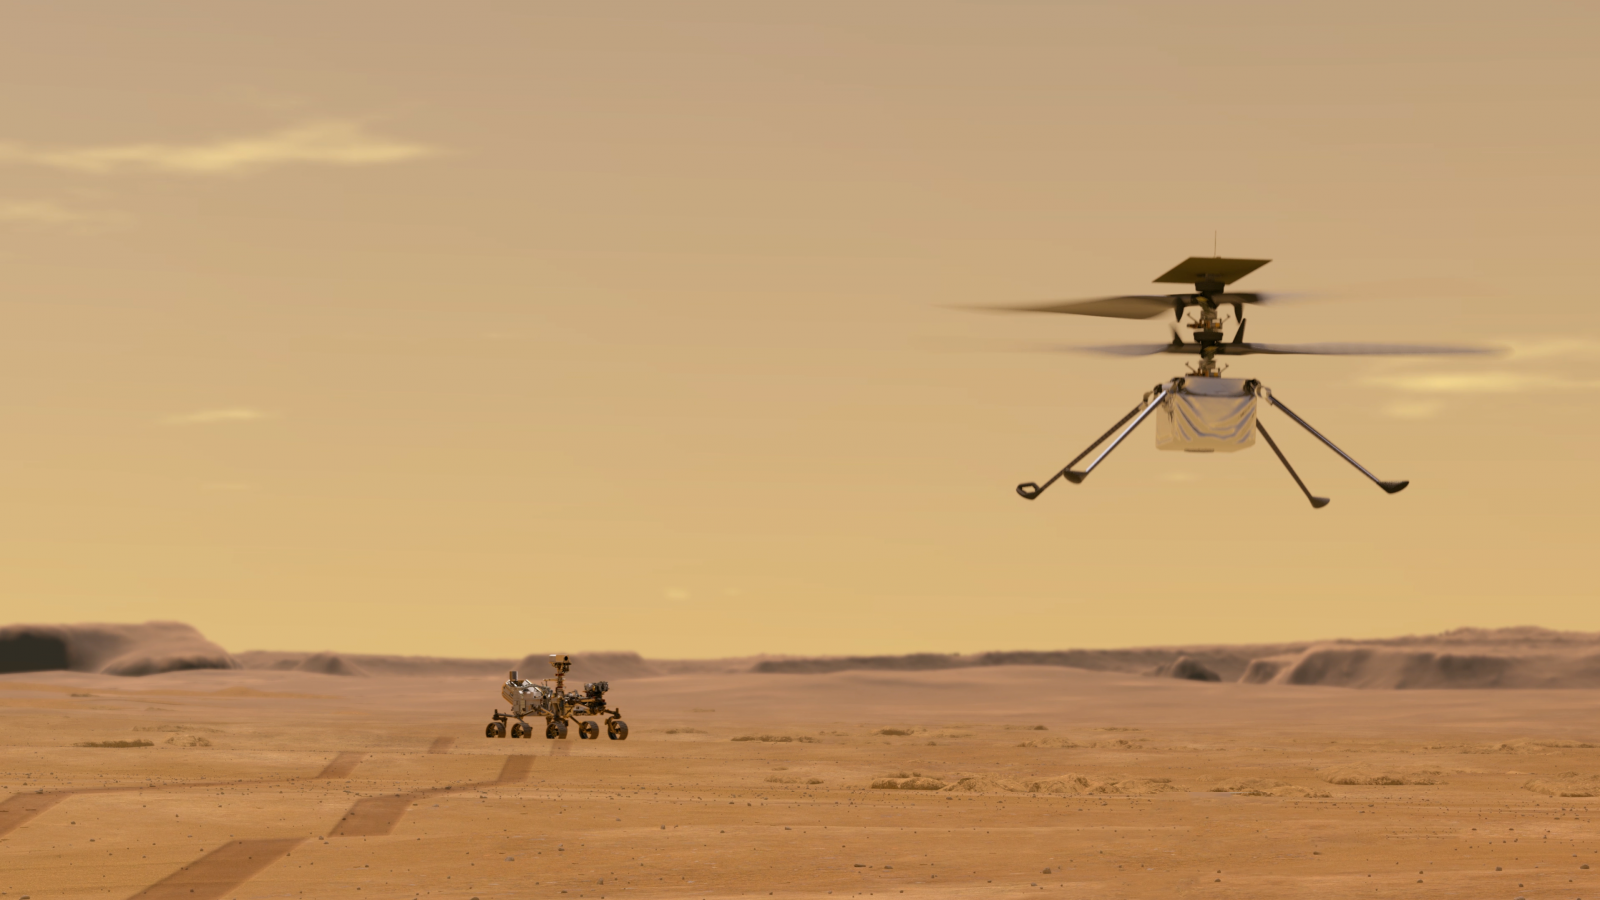 An illustration of the Ingenuity helicopter flying on Mars. Credit: NASA